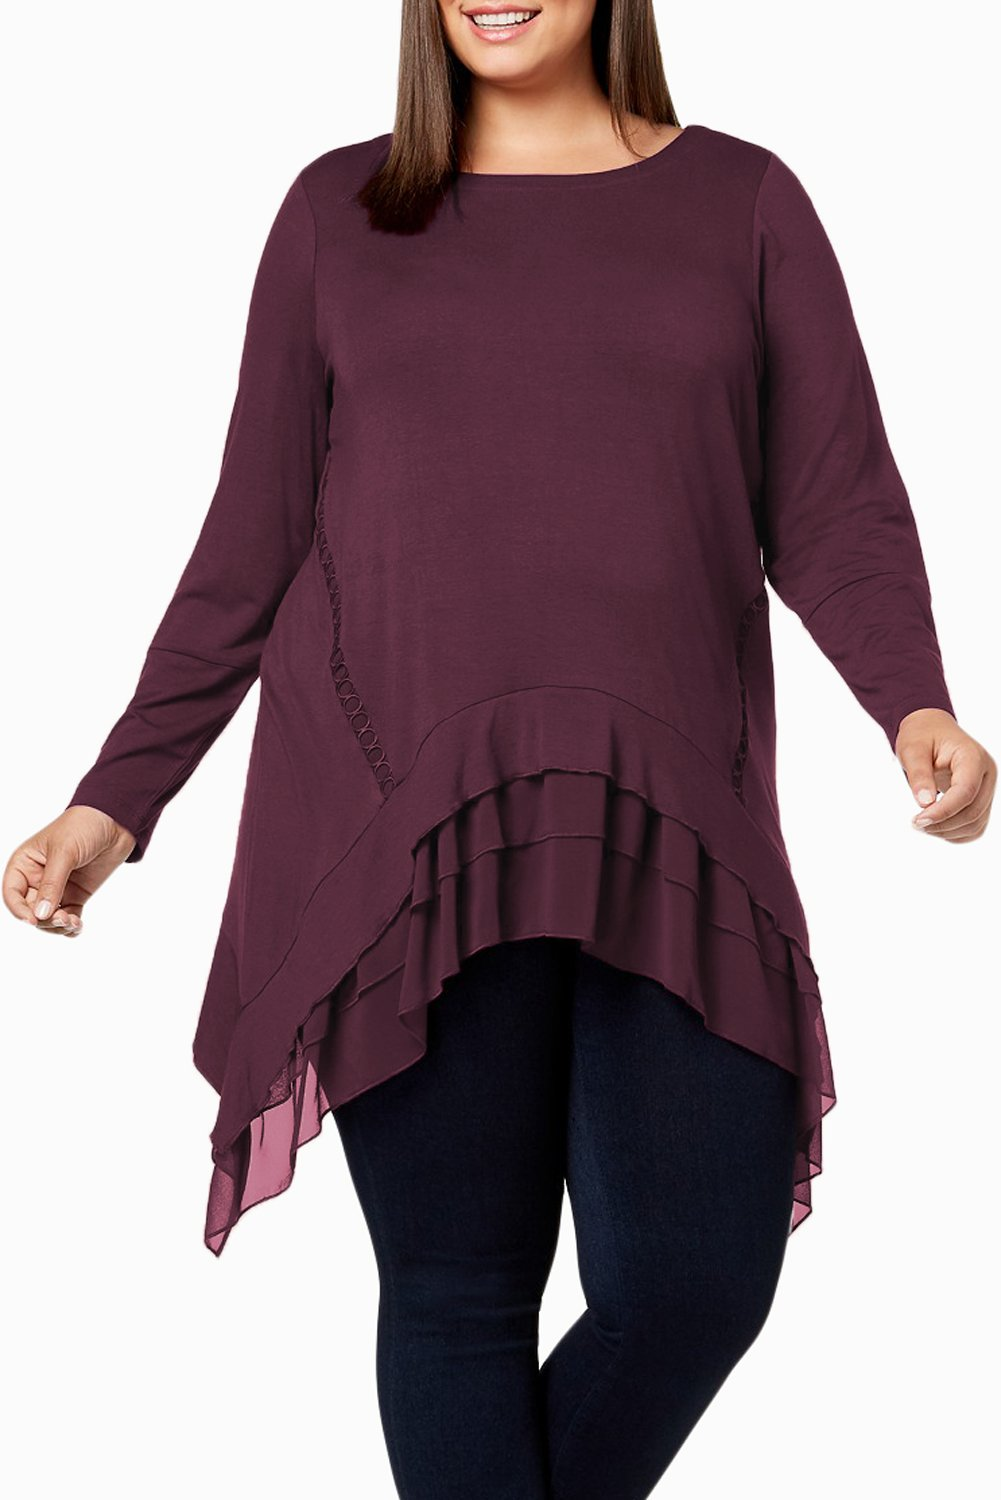 Burgundy Sheer Ruffled Splice Plus Size Top-Plus Size Clothing, Plus Size Tops-Azura Exchange